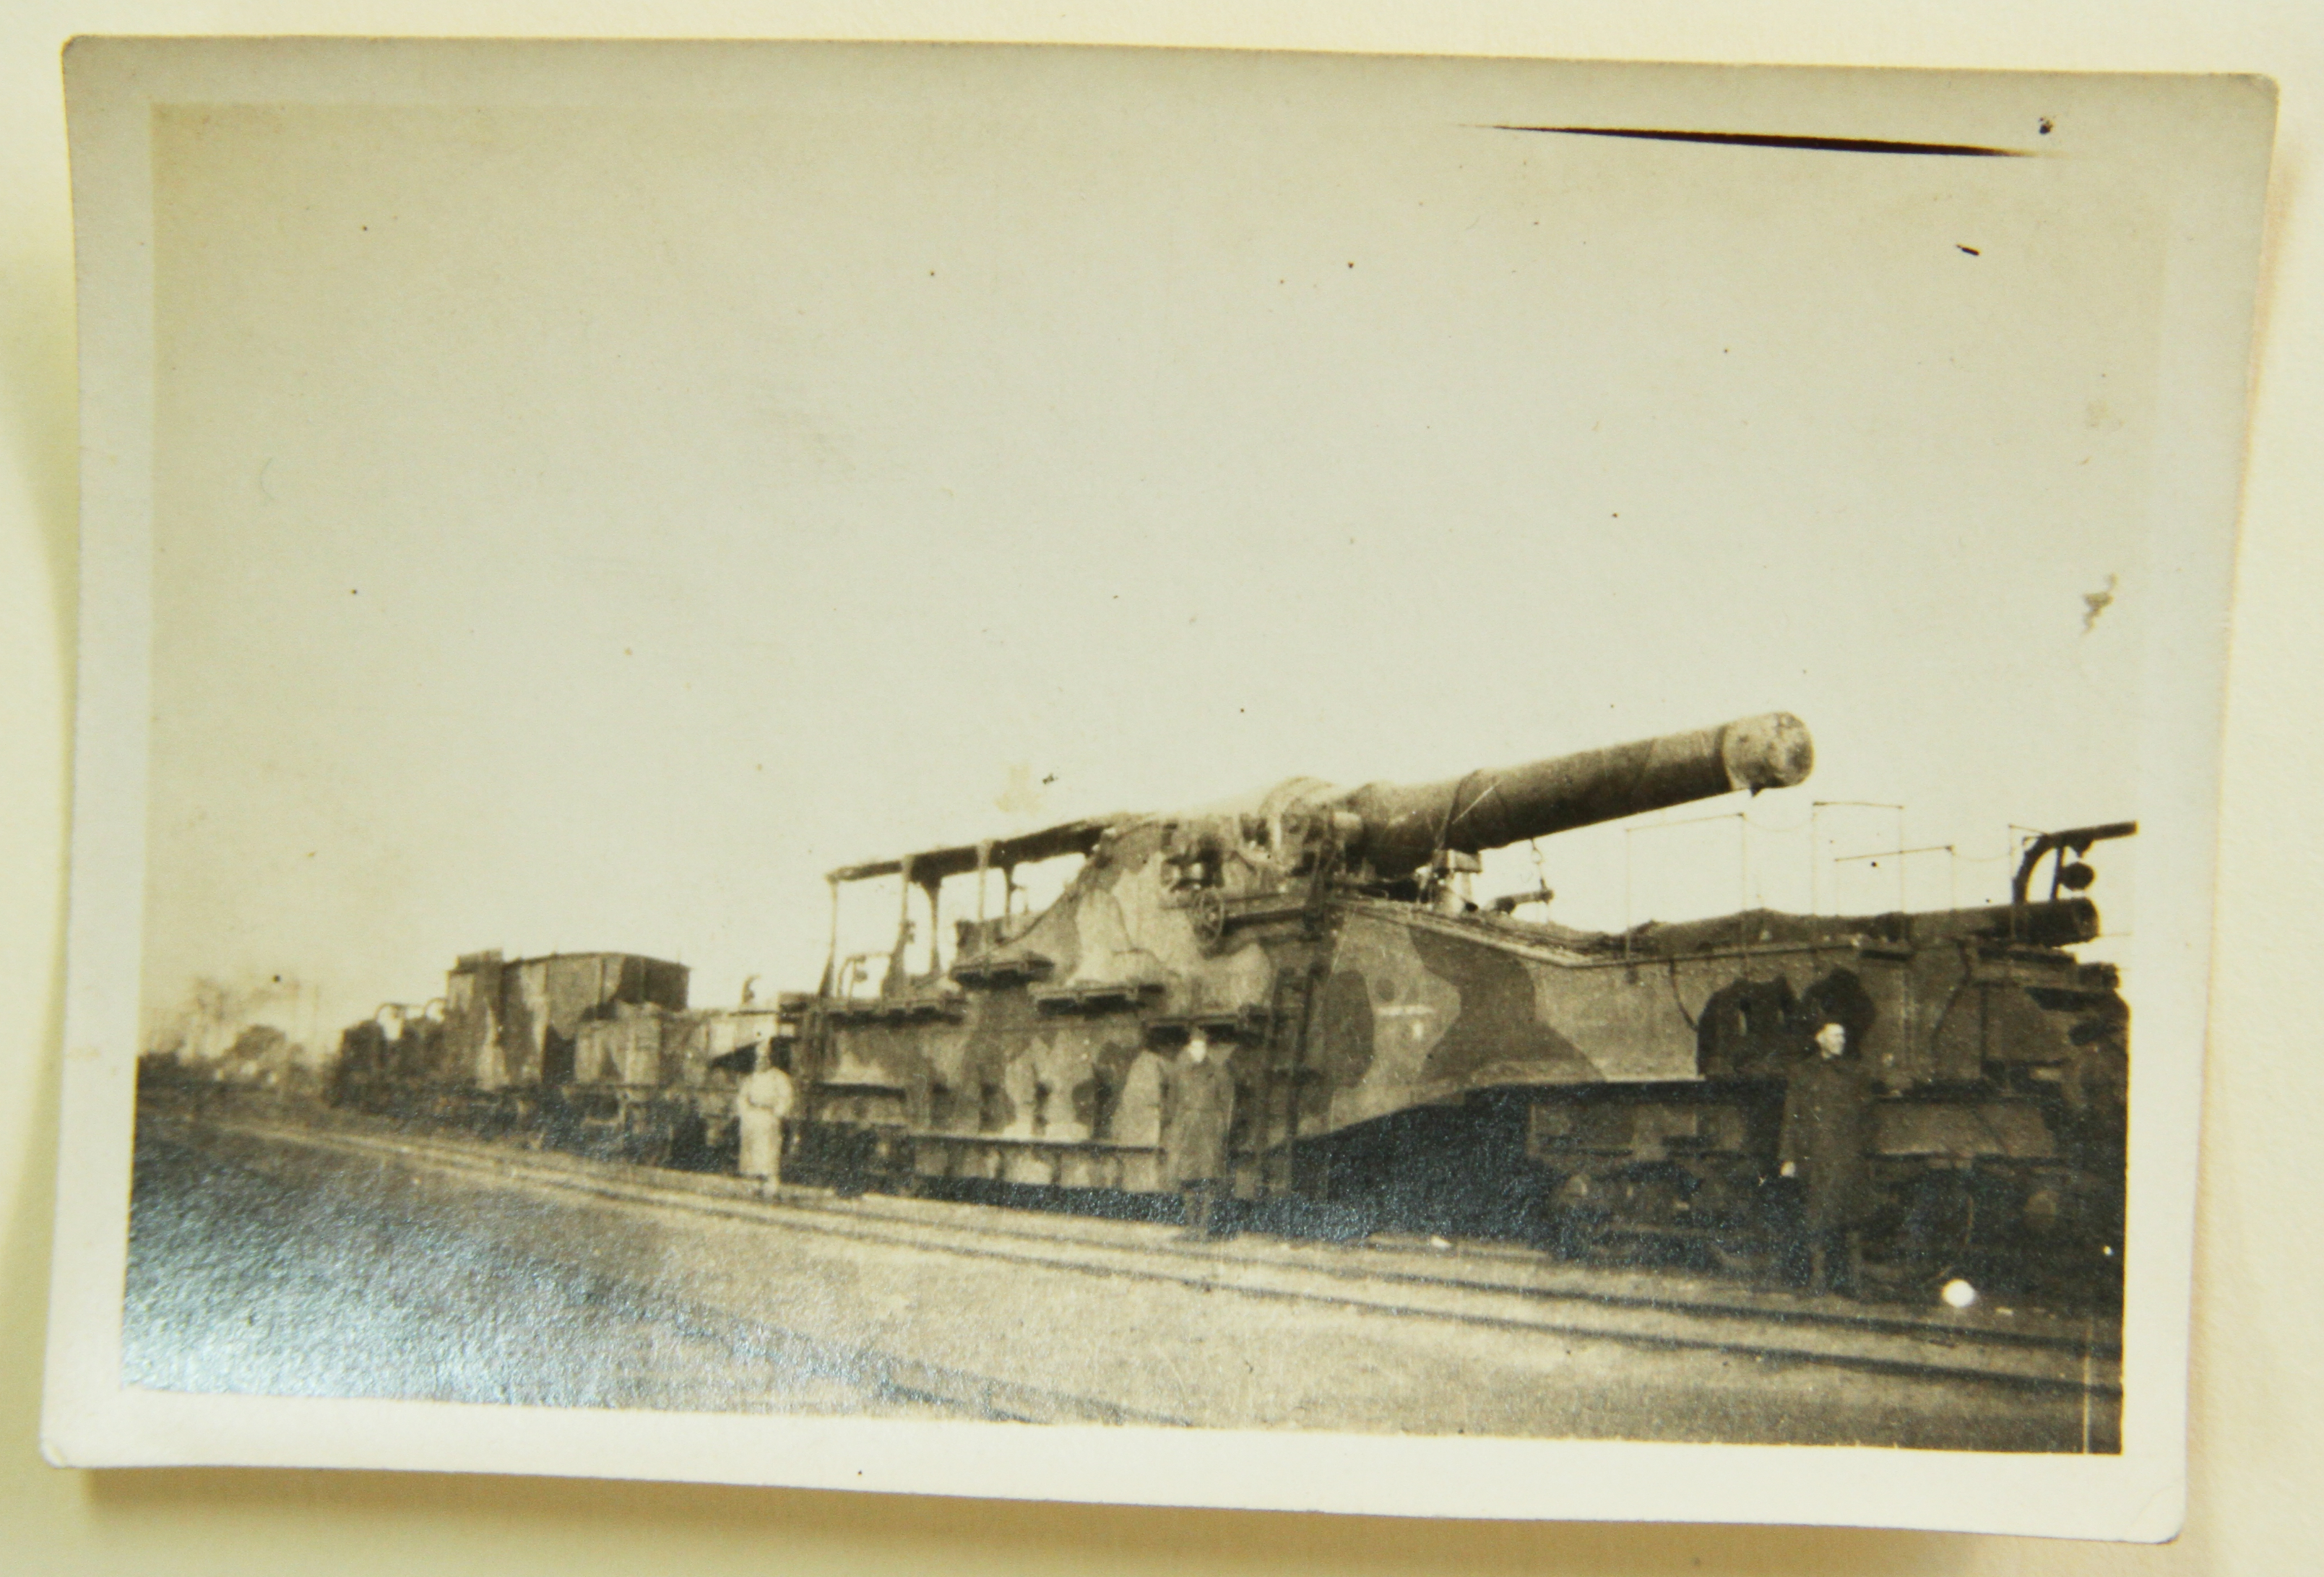 Large Gun, Earl L. Stahl Collection, Courtesy of Craig Bowers.